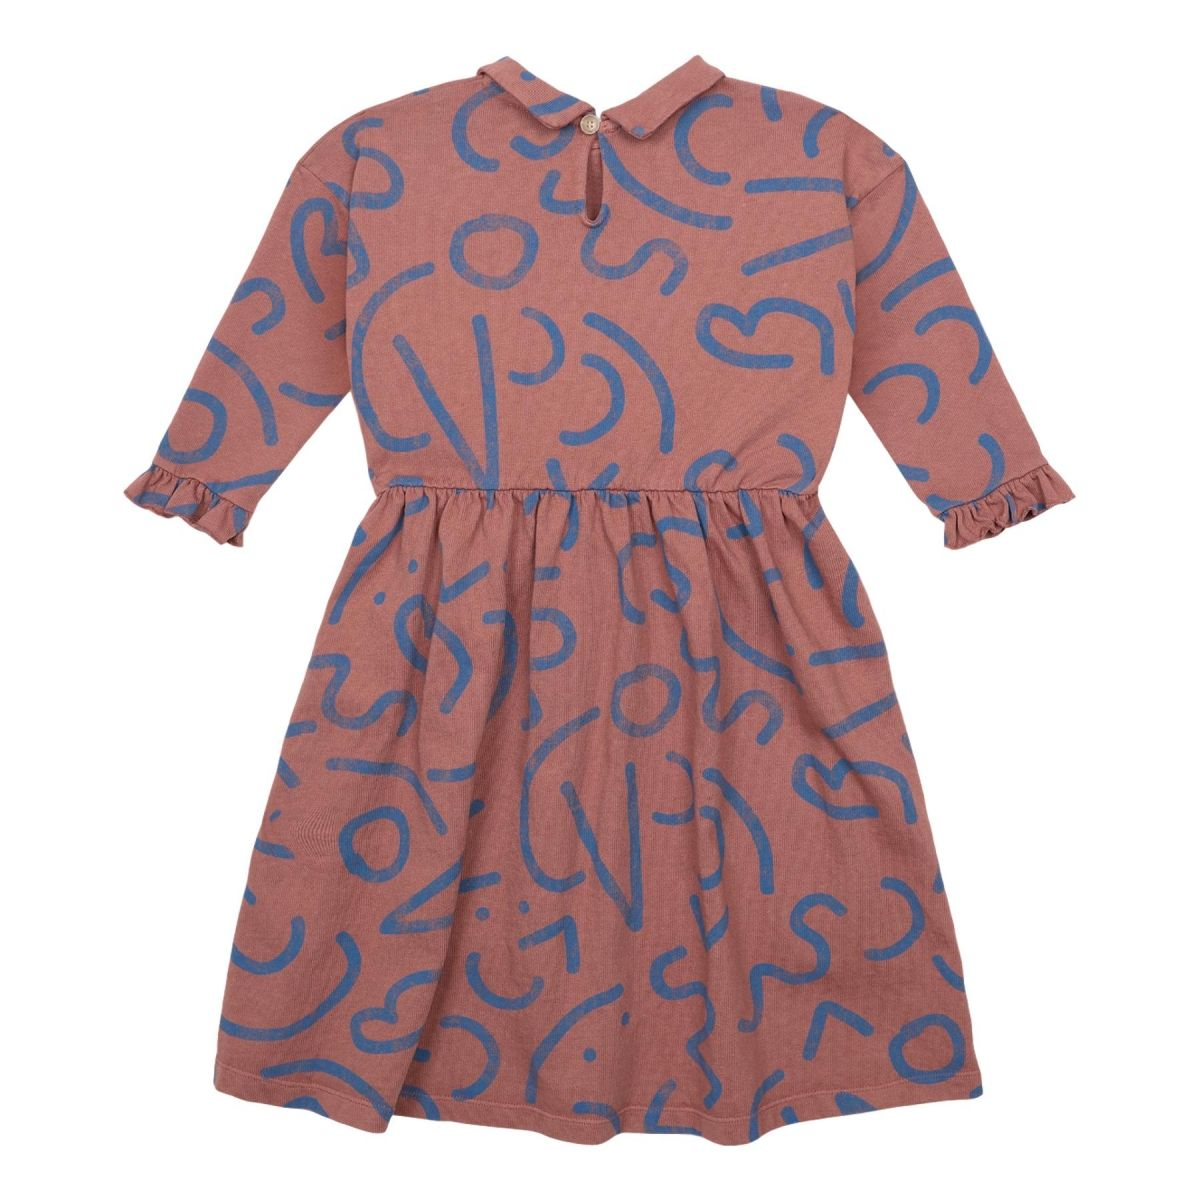 Bobo Choses - Curved Lines All Over Dress brown - 1